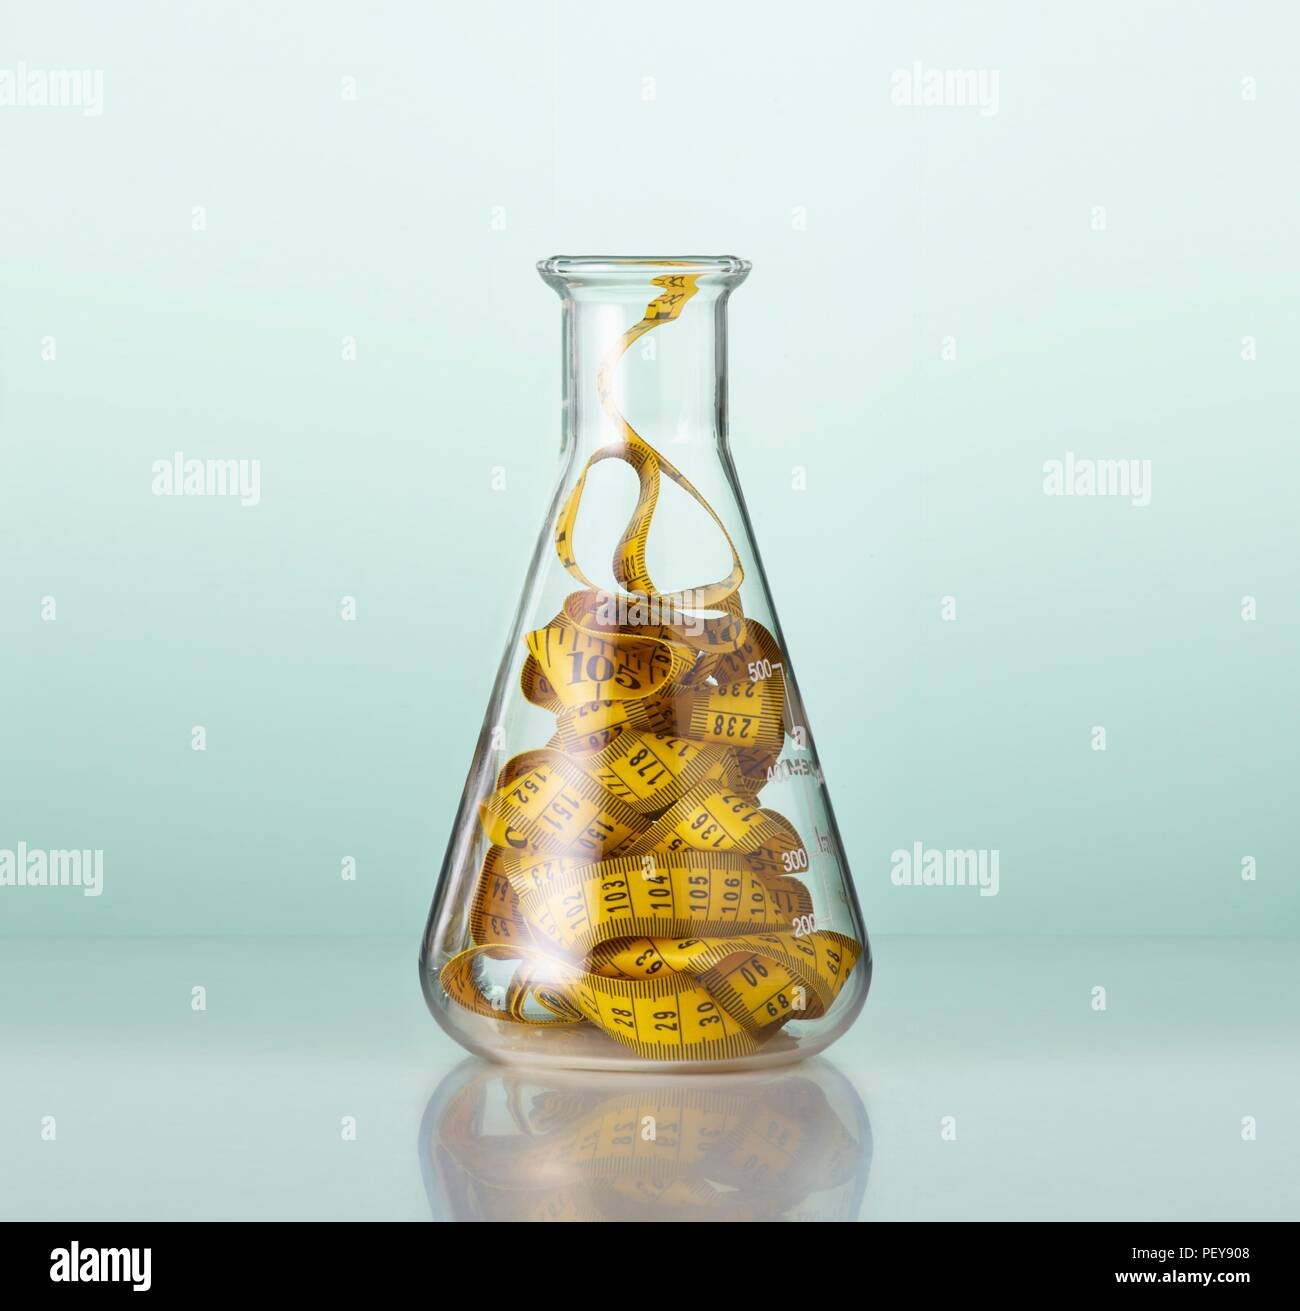 Laboratory glassware with tape measures. - Stock Image